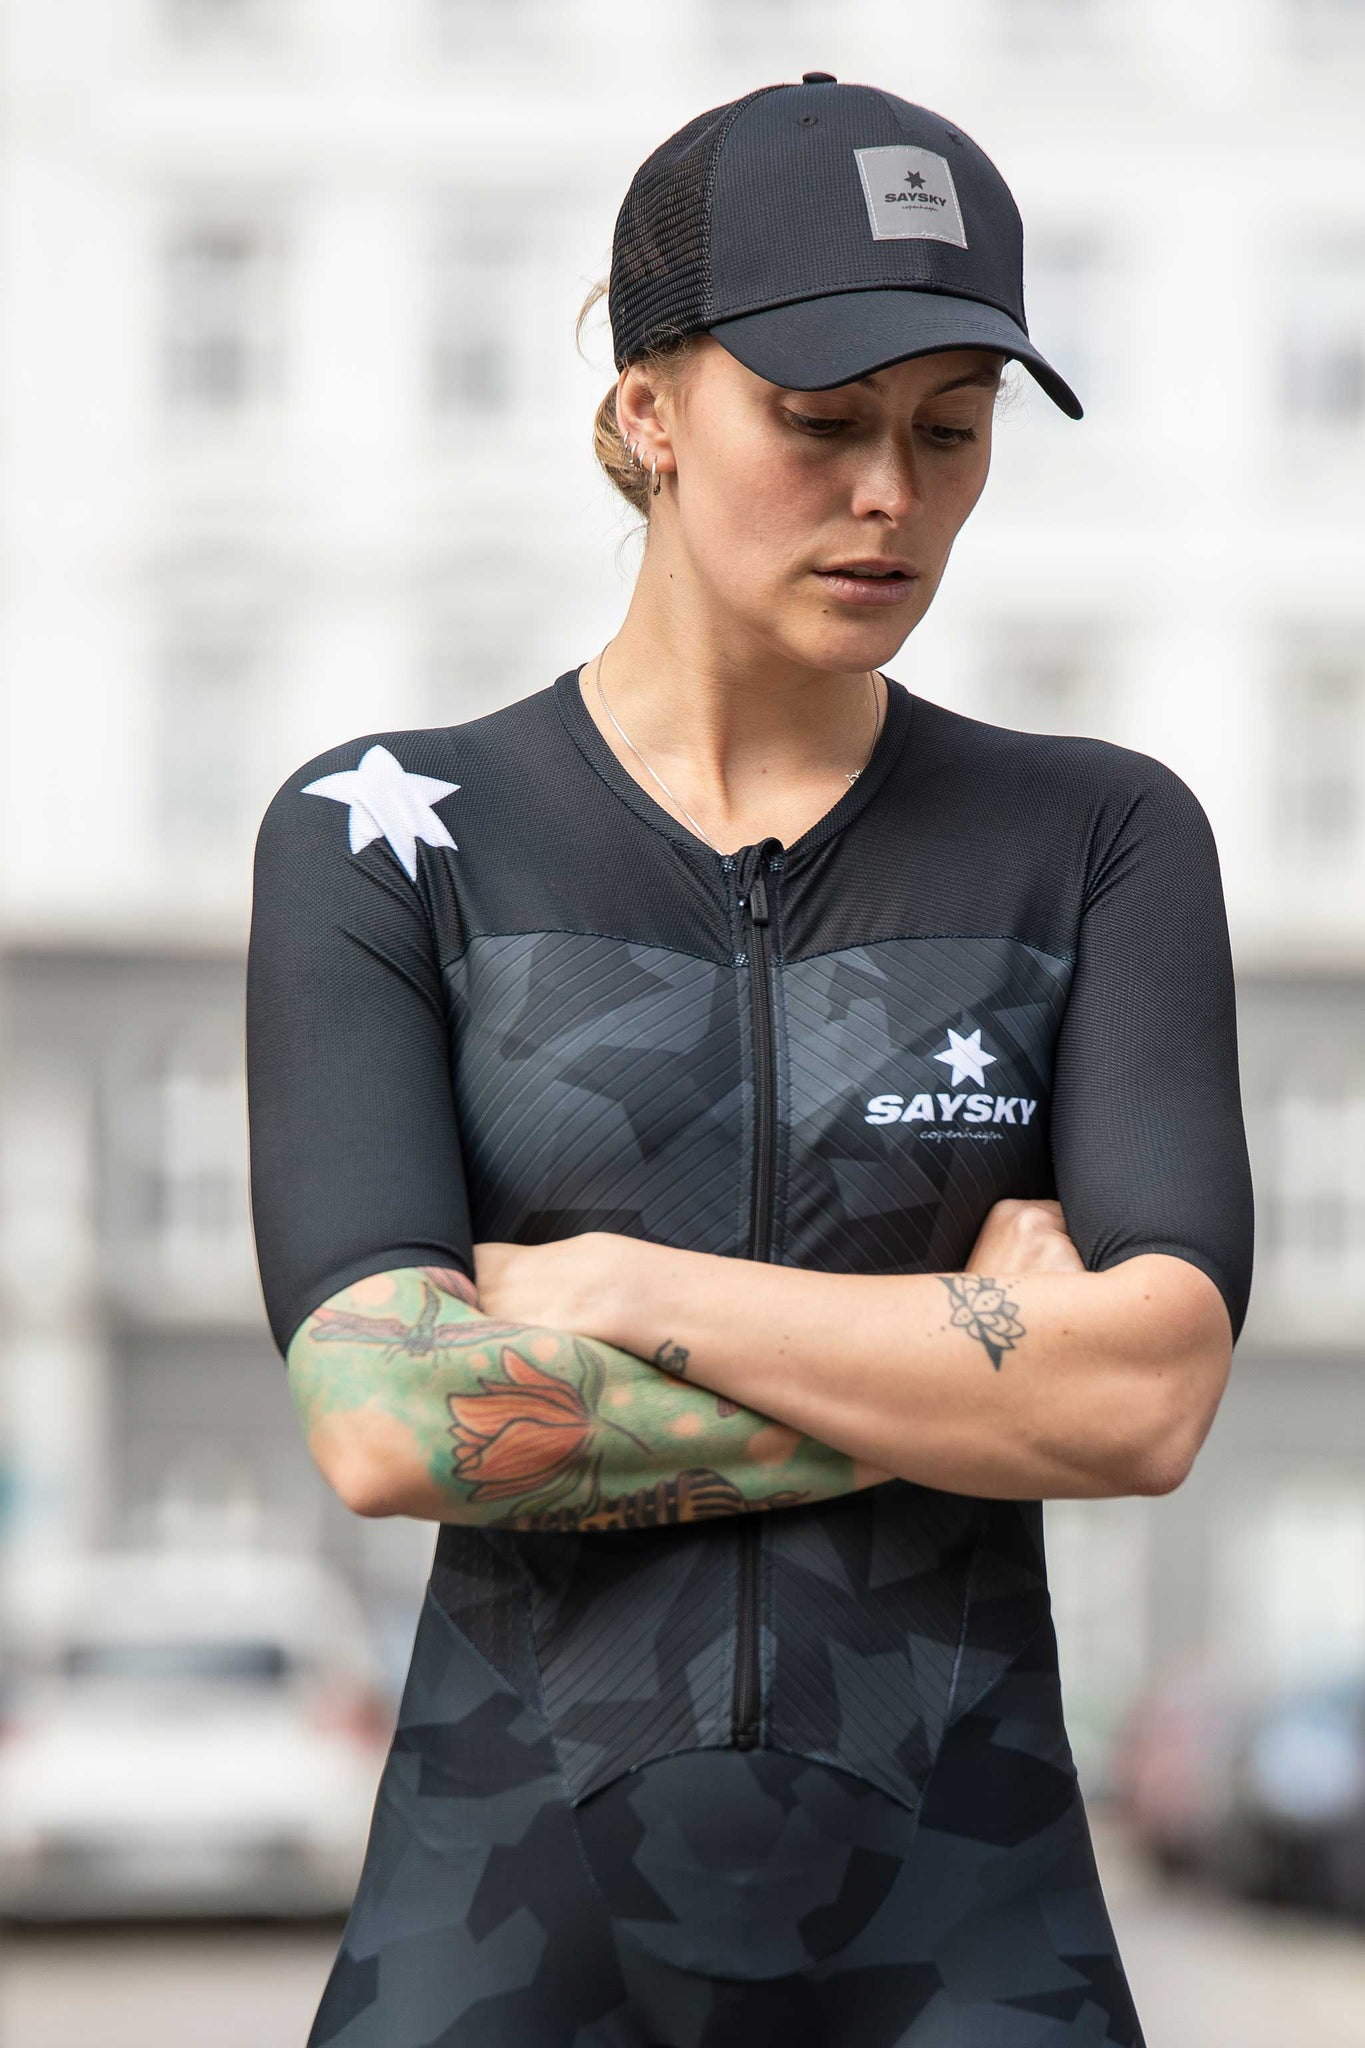 SAYSKY Splinter Aero Suit 4.0